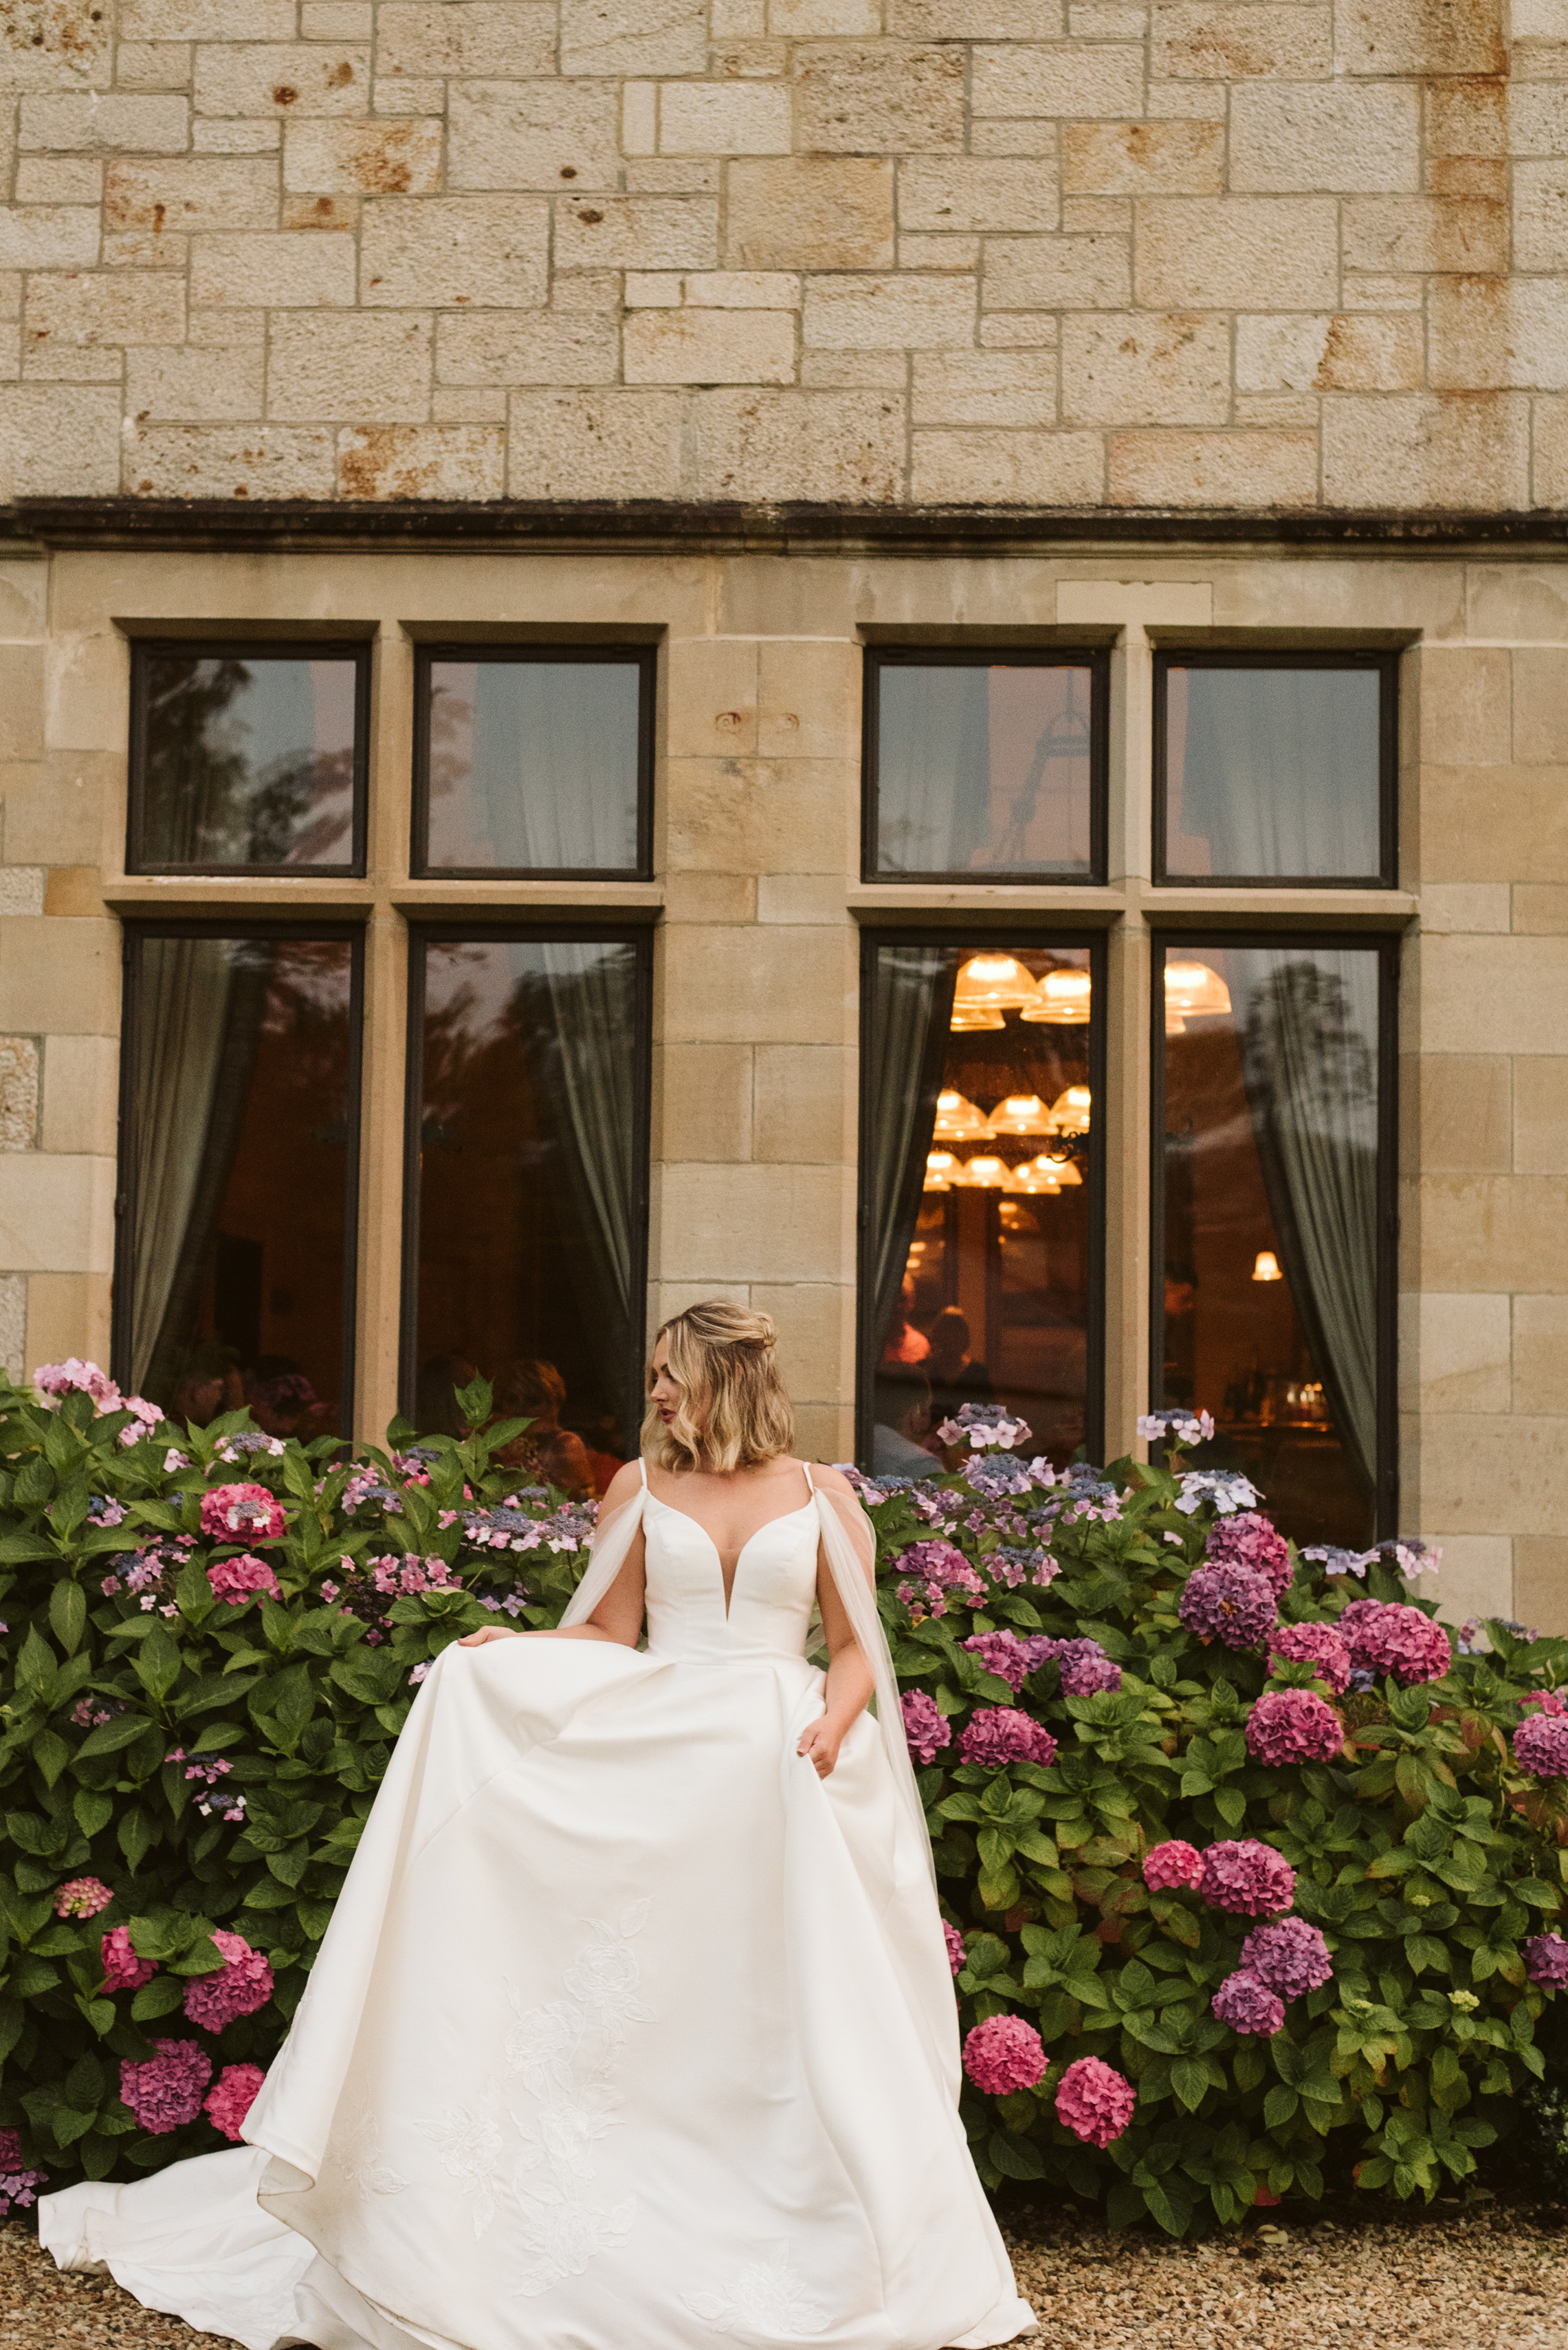 Bride in a mikado ballgown wedding dress with straps and a tulle cape standing in front of hydrangeas at Lough Eske Castle in Ireland